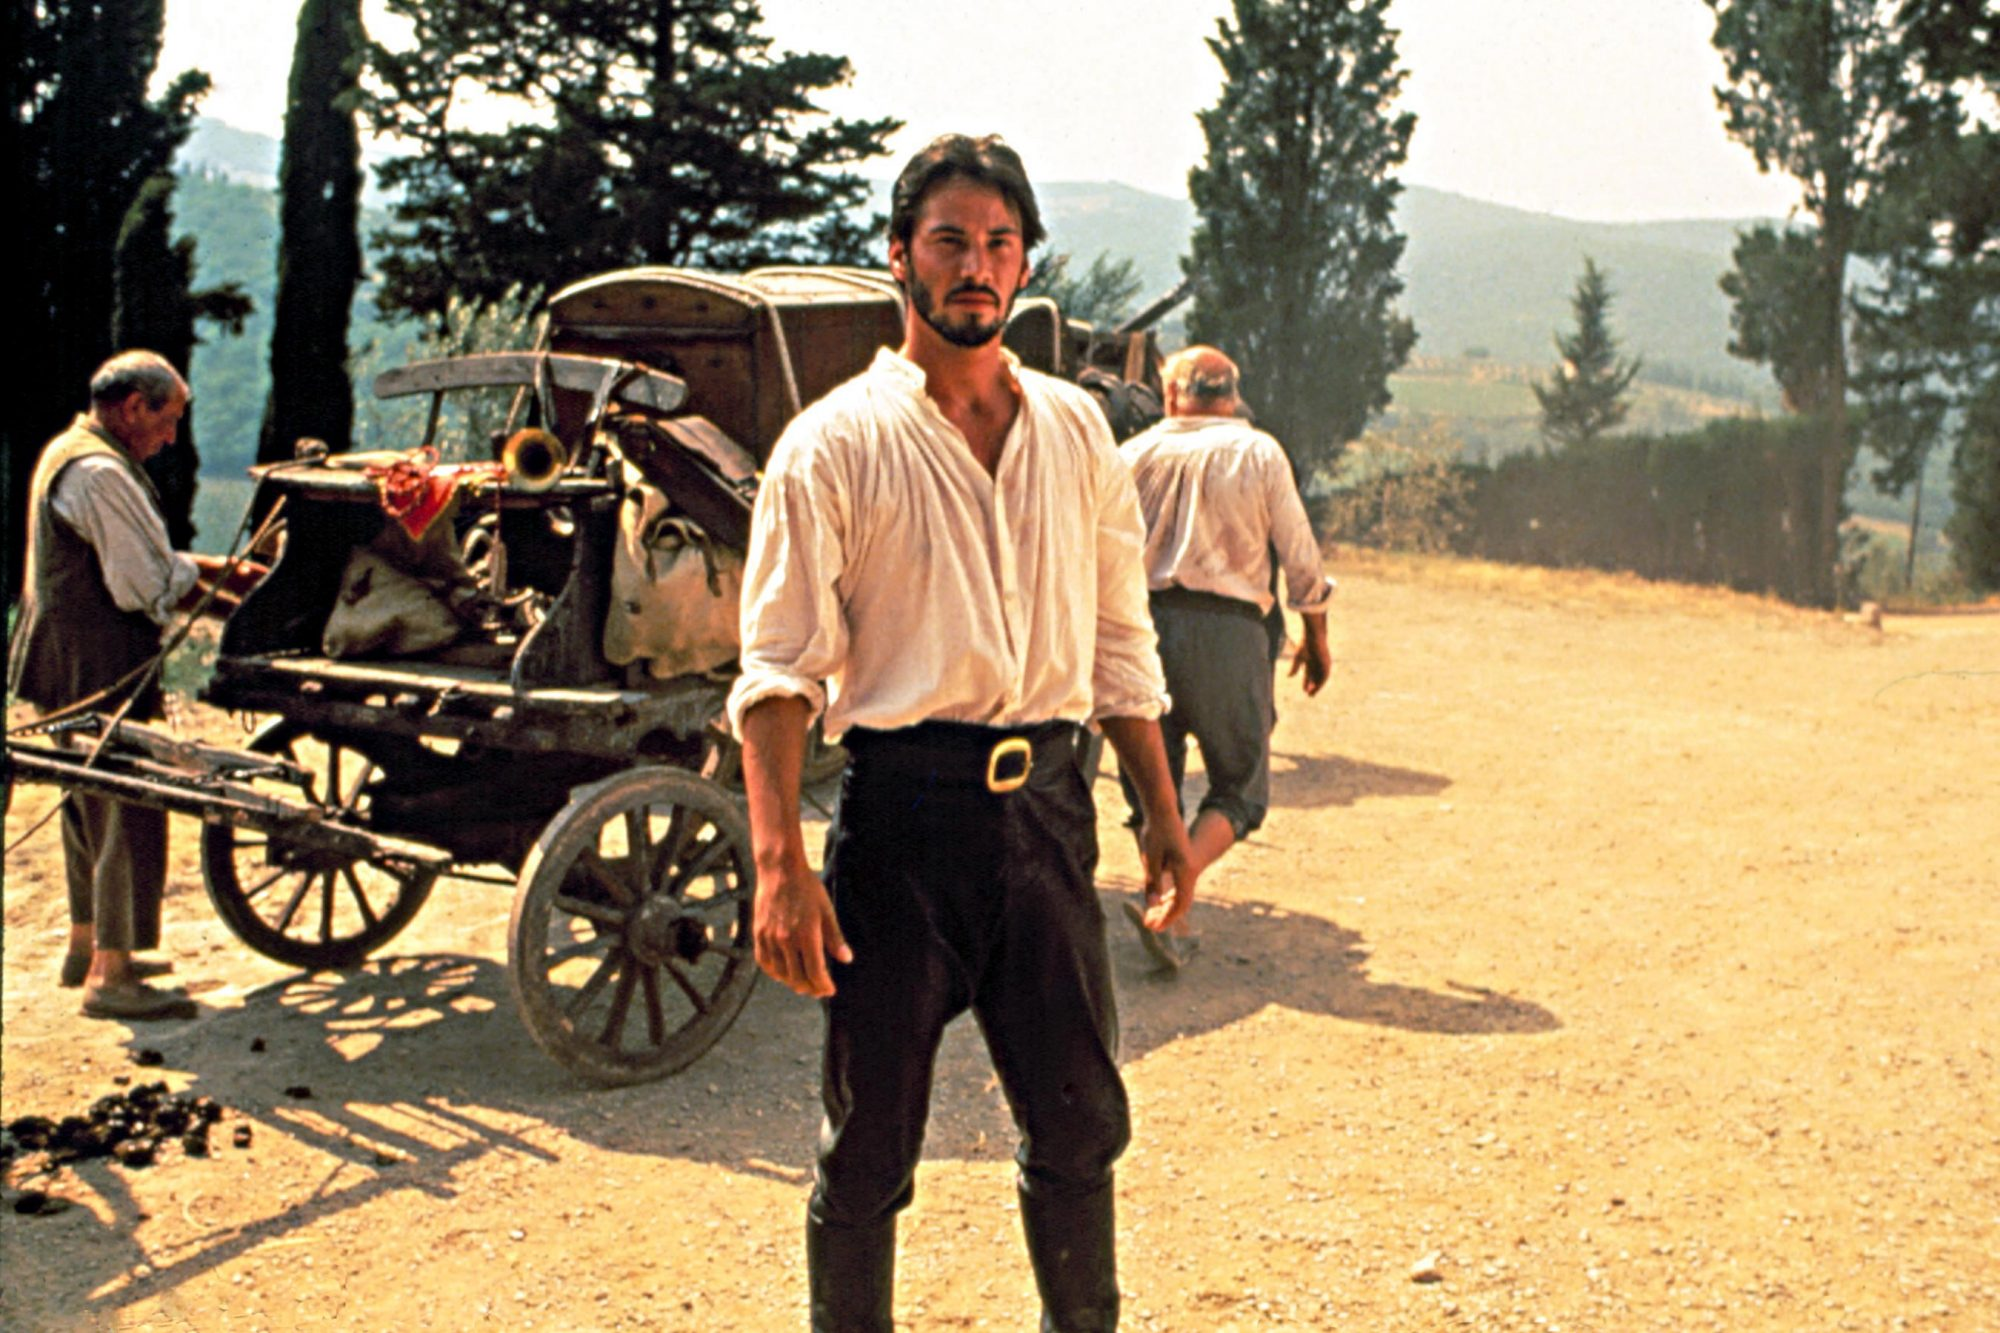 MUCH ADO ABOUT NOTHING, Keanu Reeves, 1993.